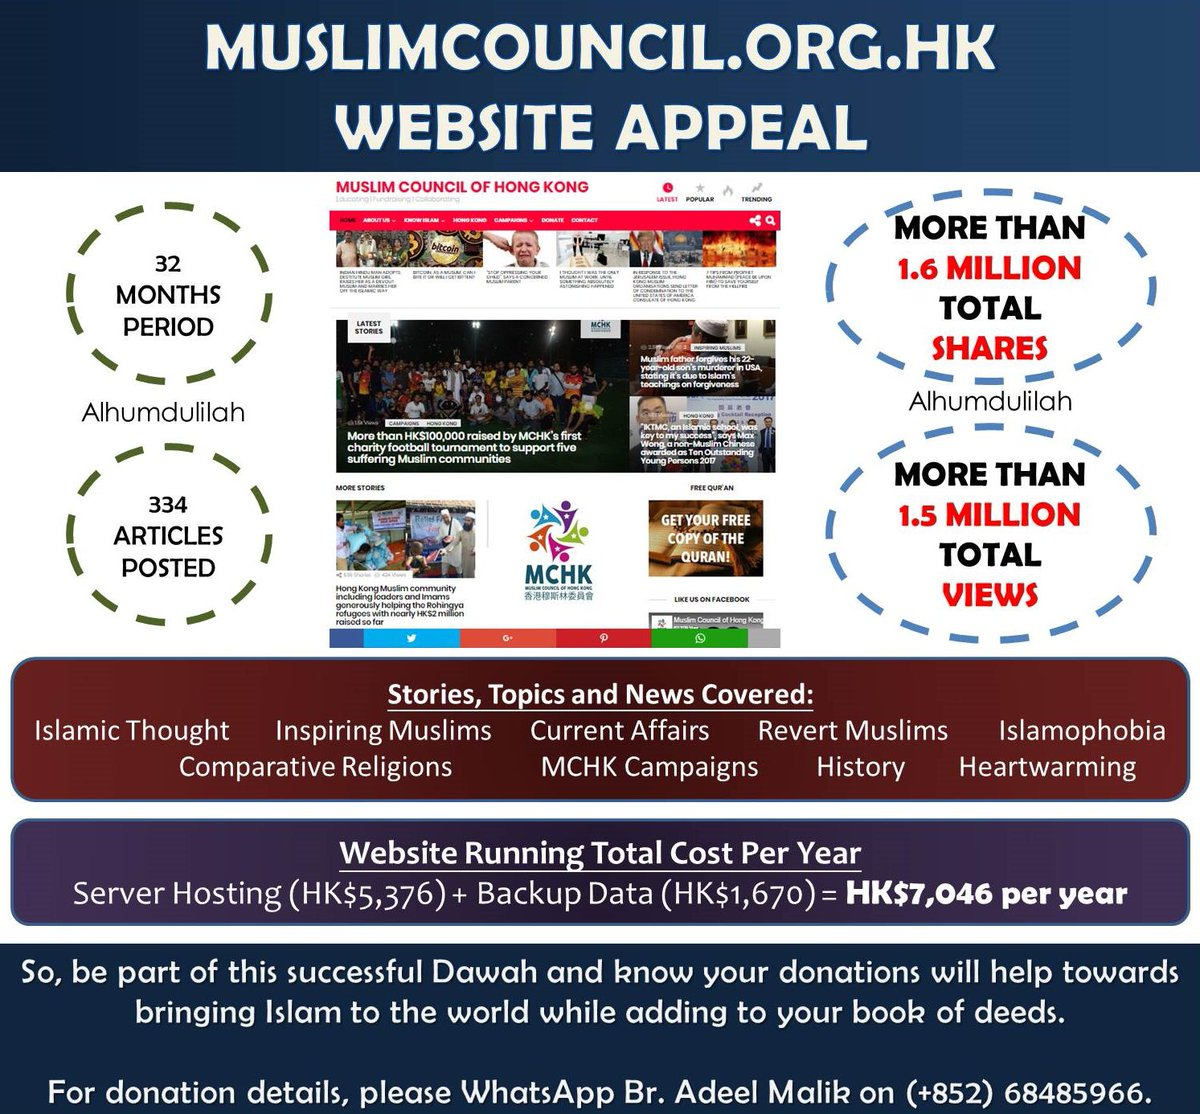 MCHK #Website Appeal 2018   In June 2015, Muslim Council of Hong Kong set up their official website -  http:// muslimcouncil.org.hk  &nbsp;  . 32 months from then and we have experienced a great growth all by the mercy of Allah. Alhumdulilah.    Donate:  http:// bit.ly/MCHKWebsiteApp eal2018 &nbsp; … <br>http://pic.twitter.com/0yV1hvTPBt